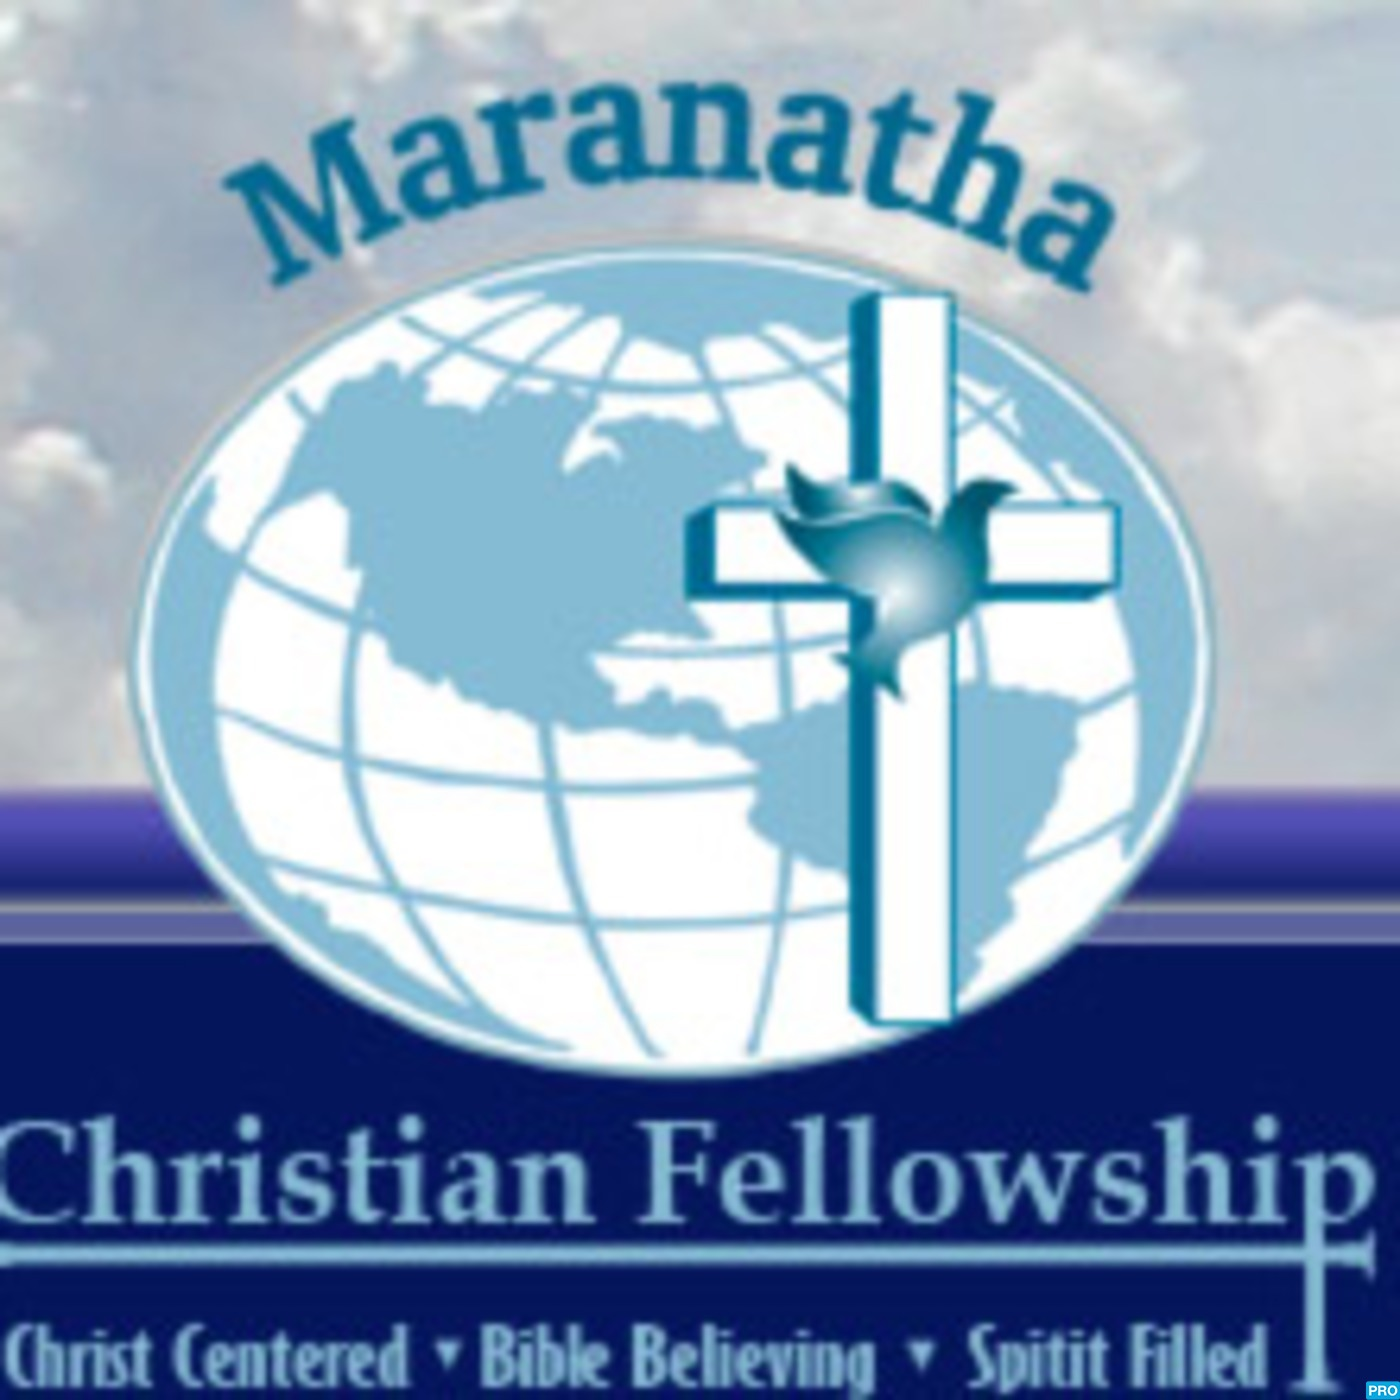 Maranatha Christian Fellowship